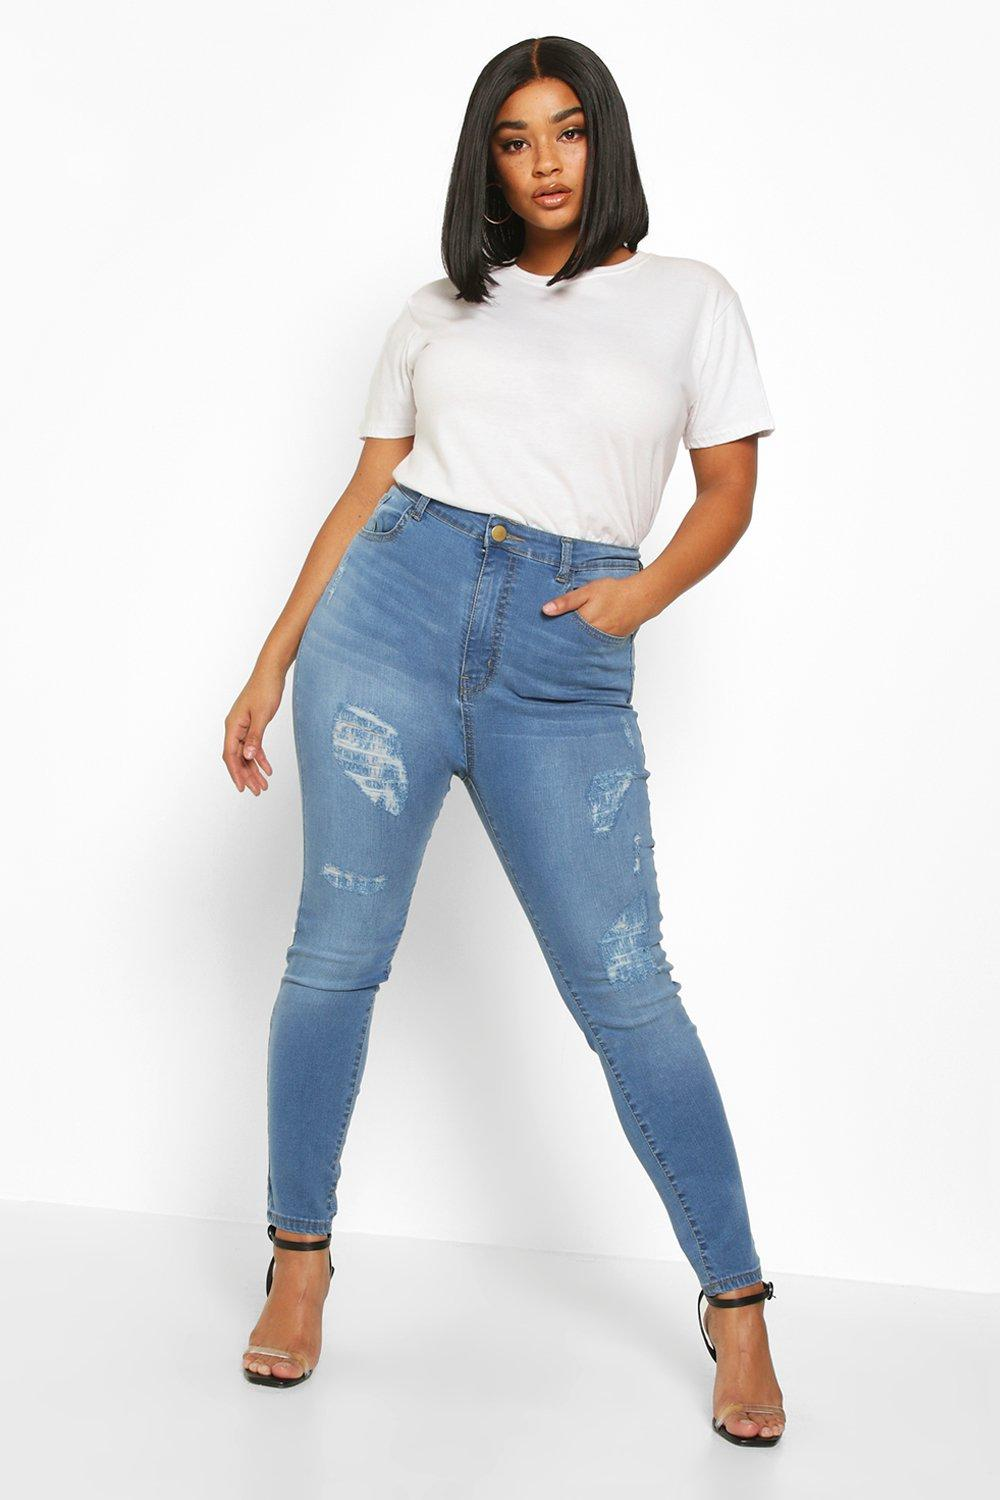 boohoo Womens Plus High Waisted All Over Ripped Skinny Jean - Blue - 18, Blue